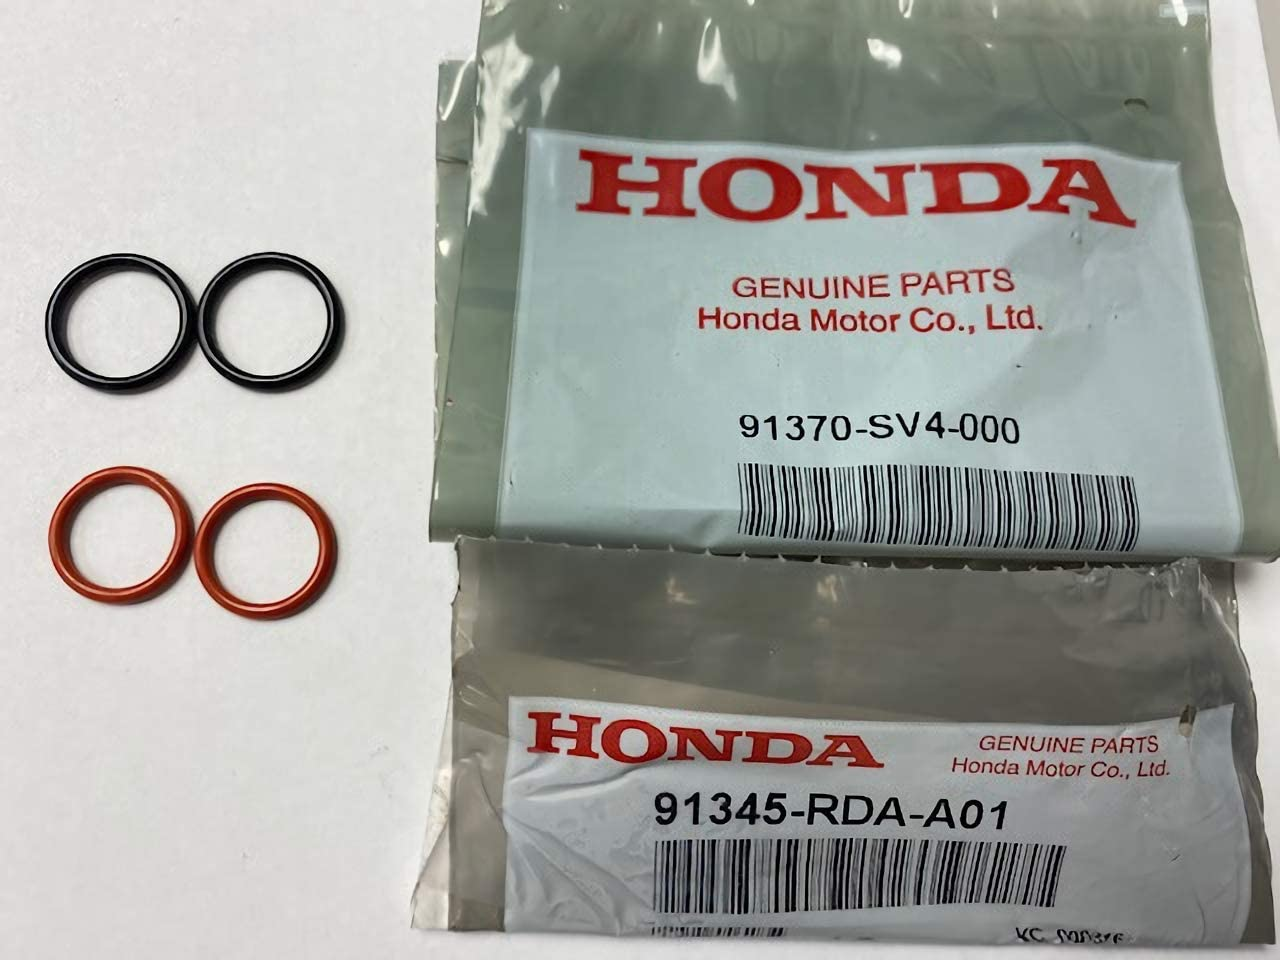 Superior Honda Genuine Power Steering Pump Outlet Sale special price Rubber O-Ring S Inlet